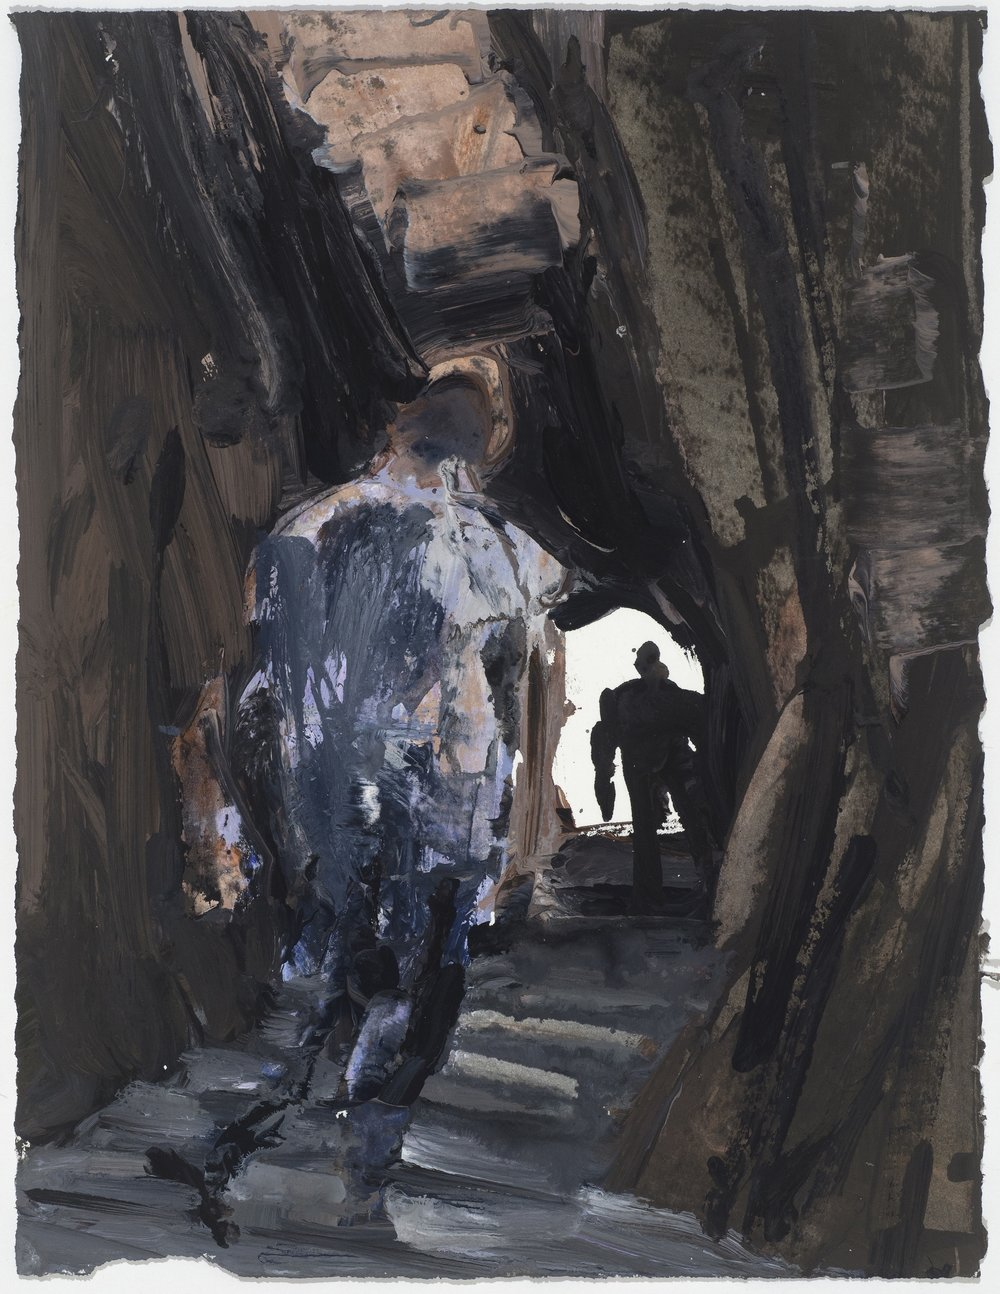 Cave study with light exit 10/16  洞穴考察與光明的出口10/16   Euan Macleod , 2016  Acrylic on paper, 38 x 29 cm, HKD 9,800 framed